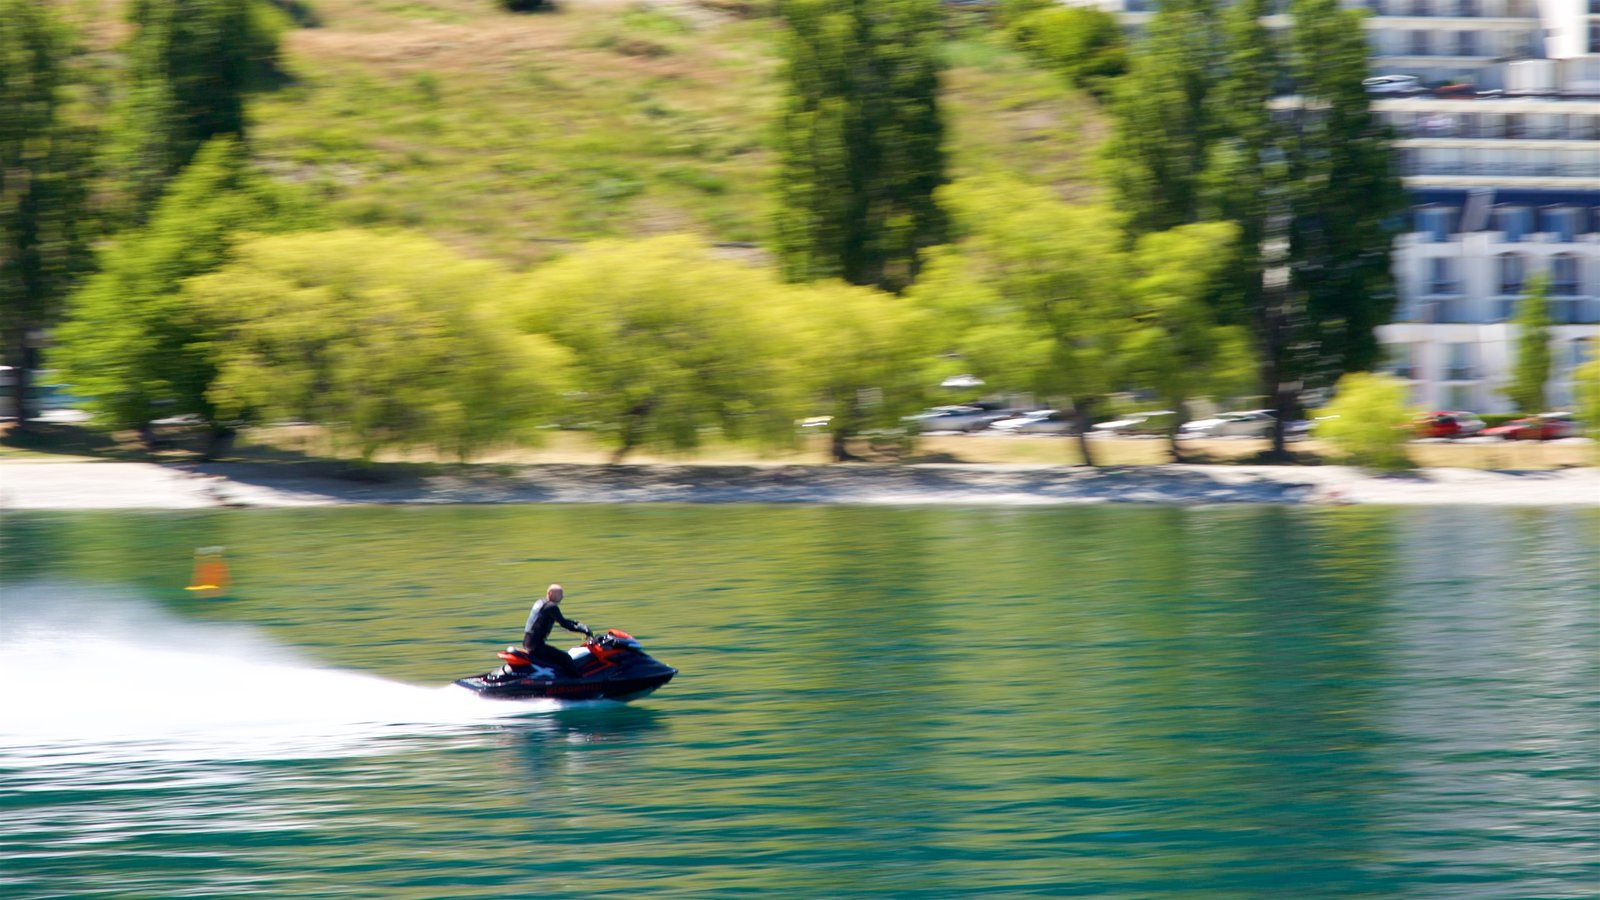 Otago showing a lake or waterhole and jet skiing